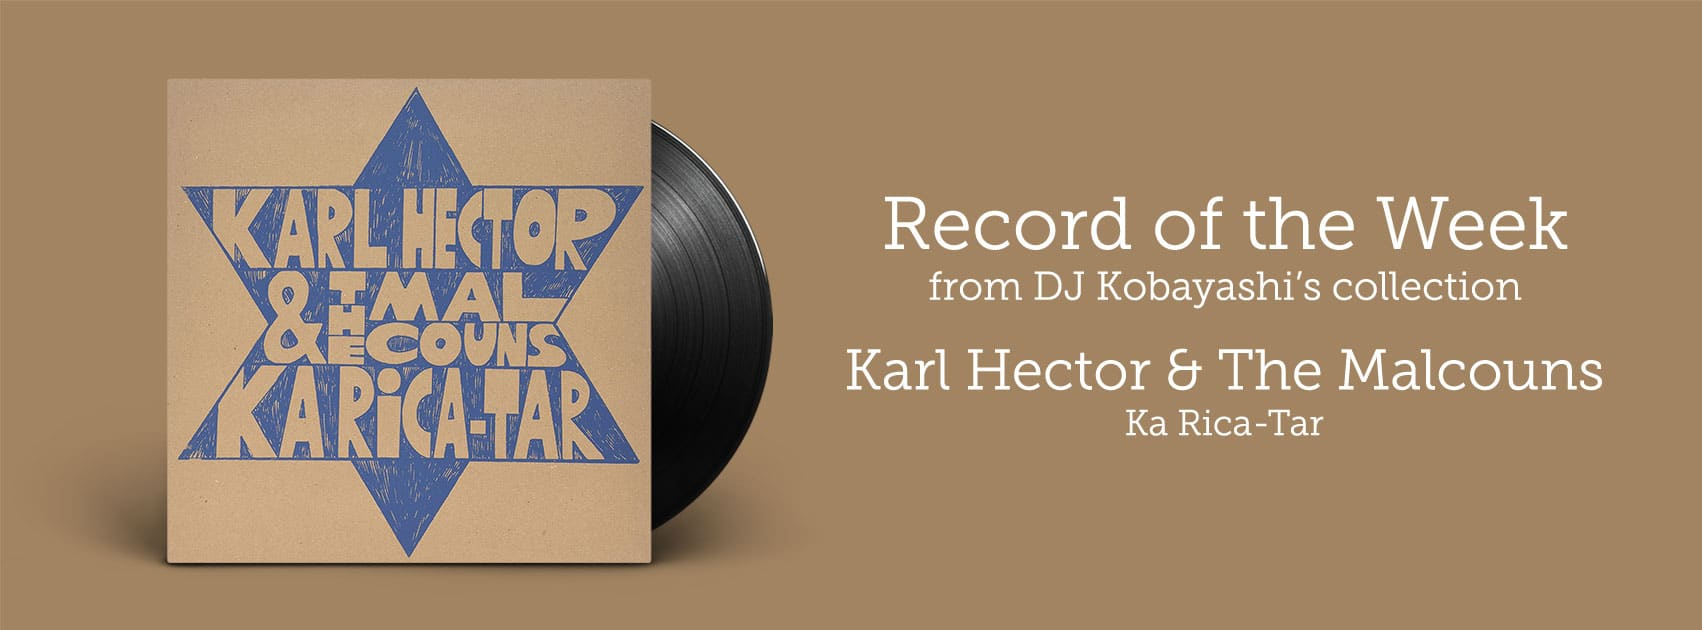 Record of the Week - Karl Hector and The Malcouns